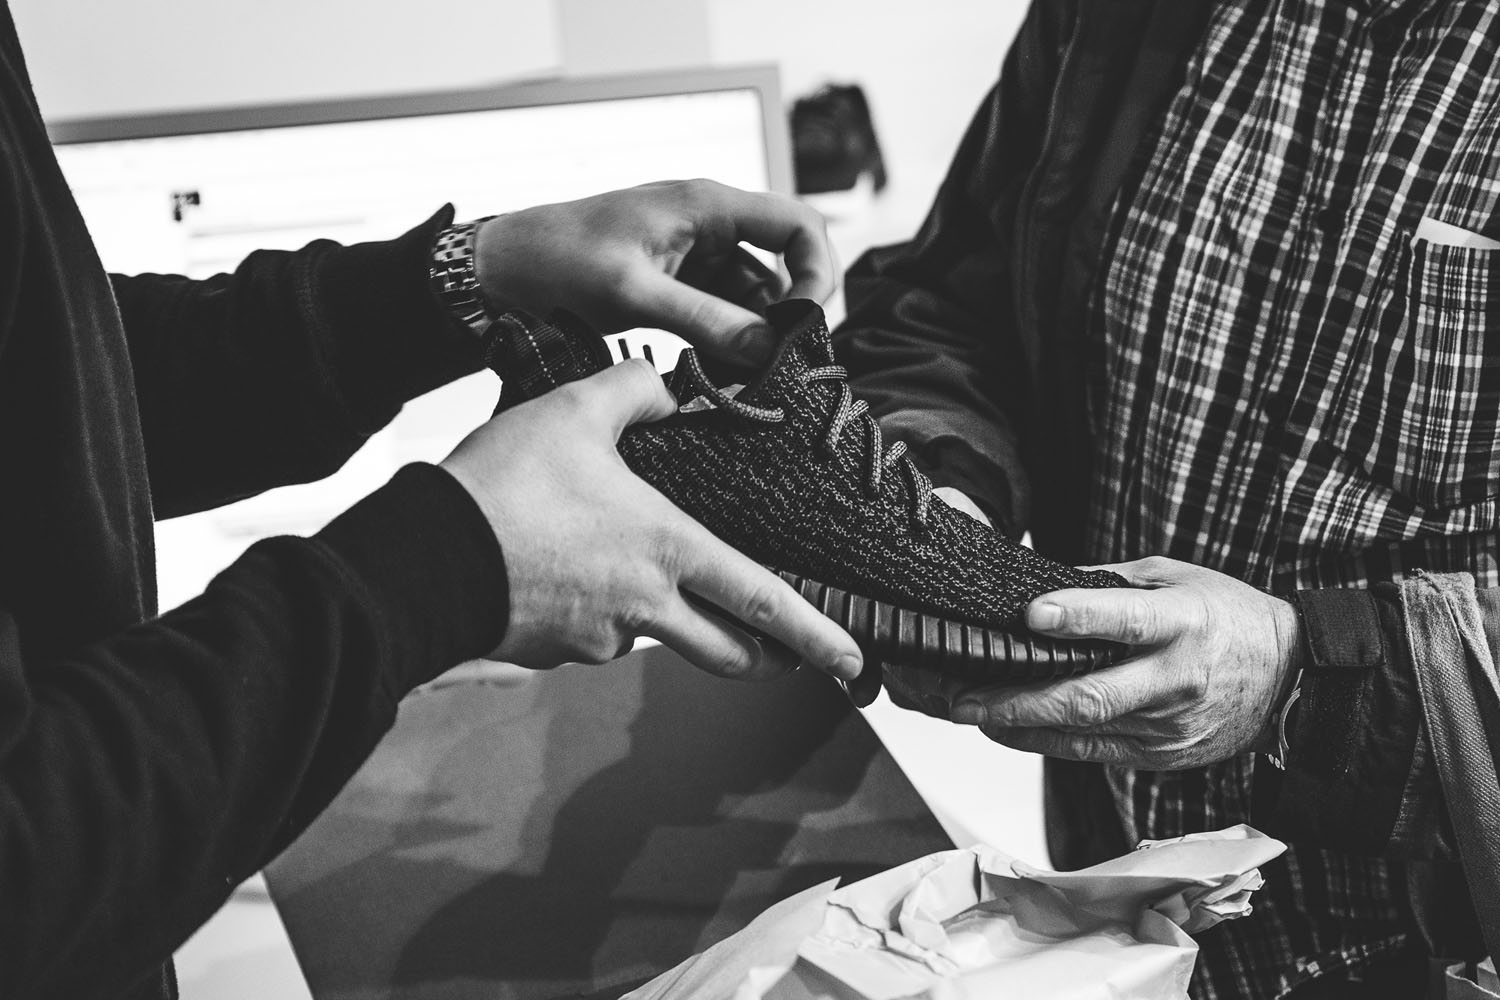 yeezy-boost-350-black-release-19.2.15-15